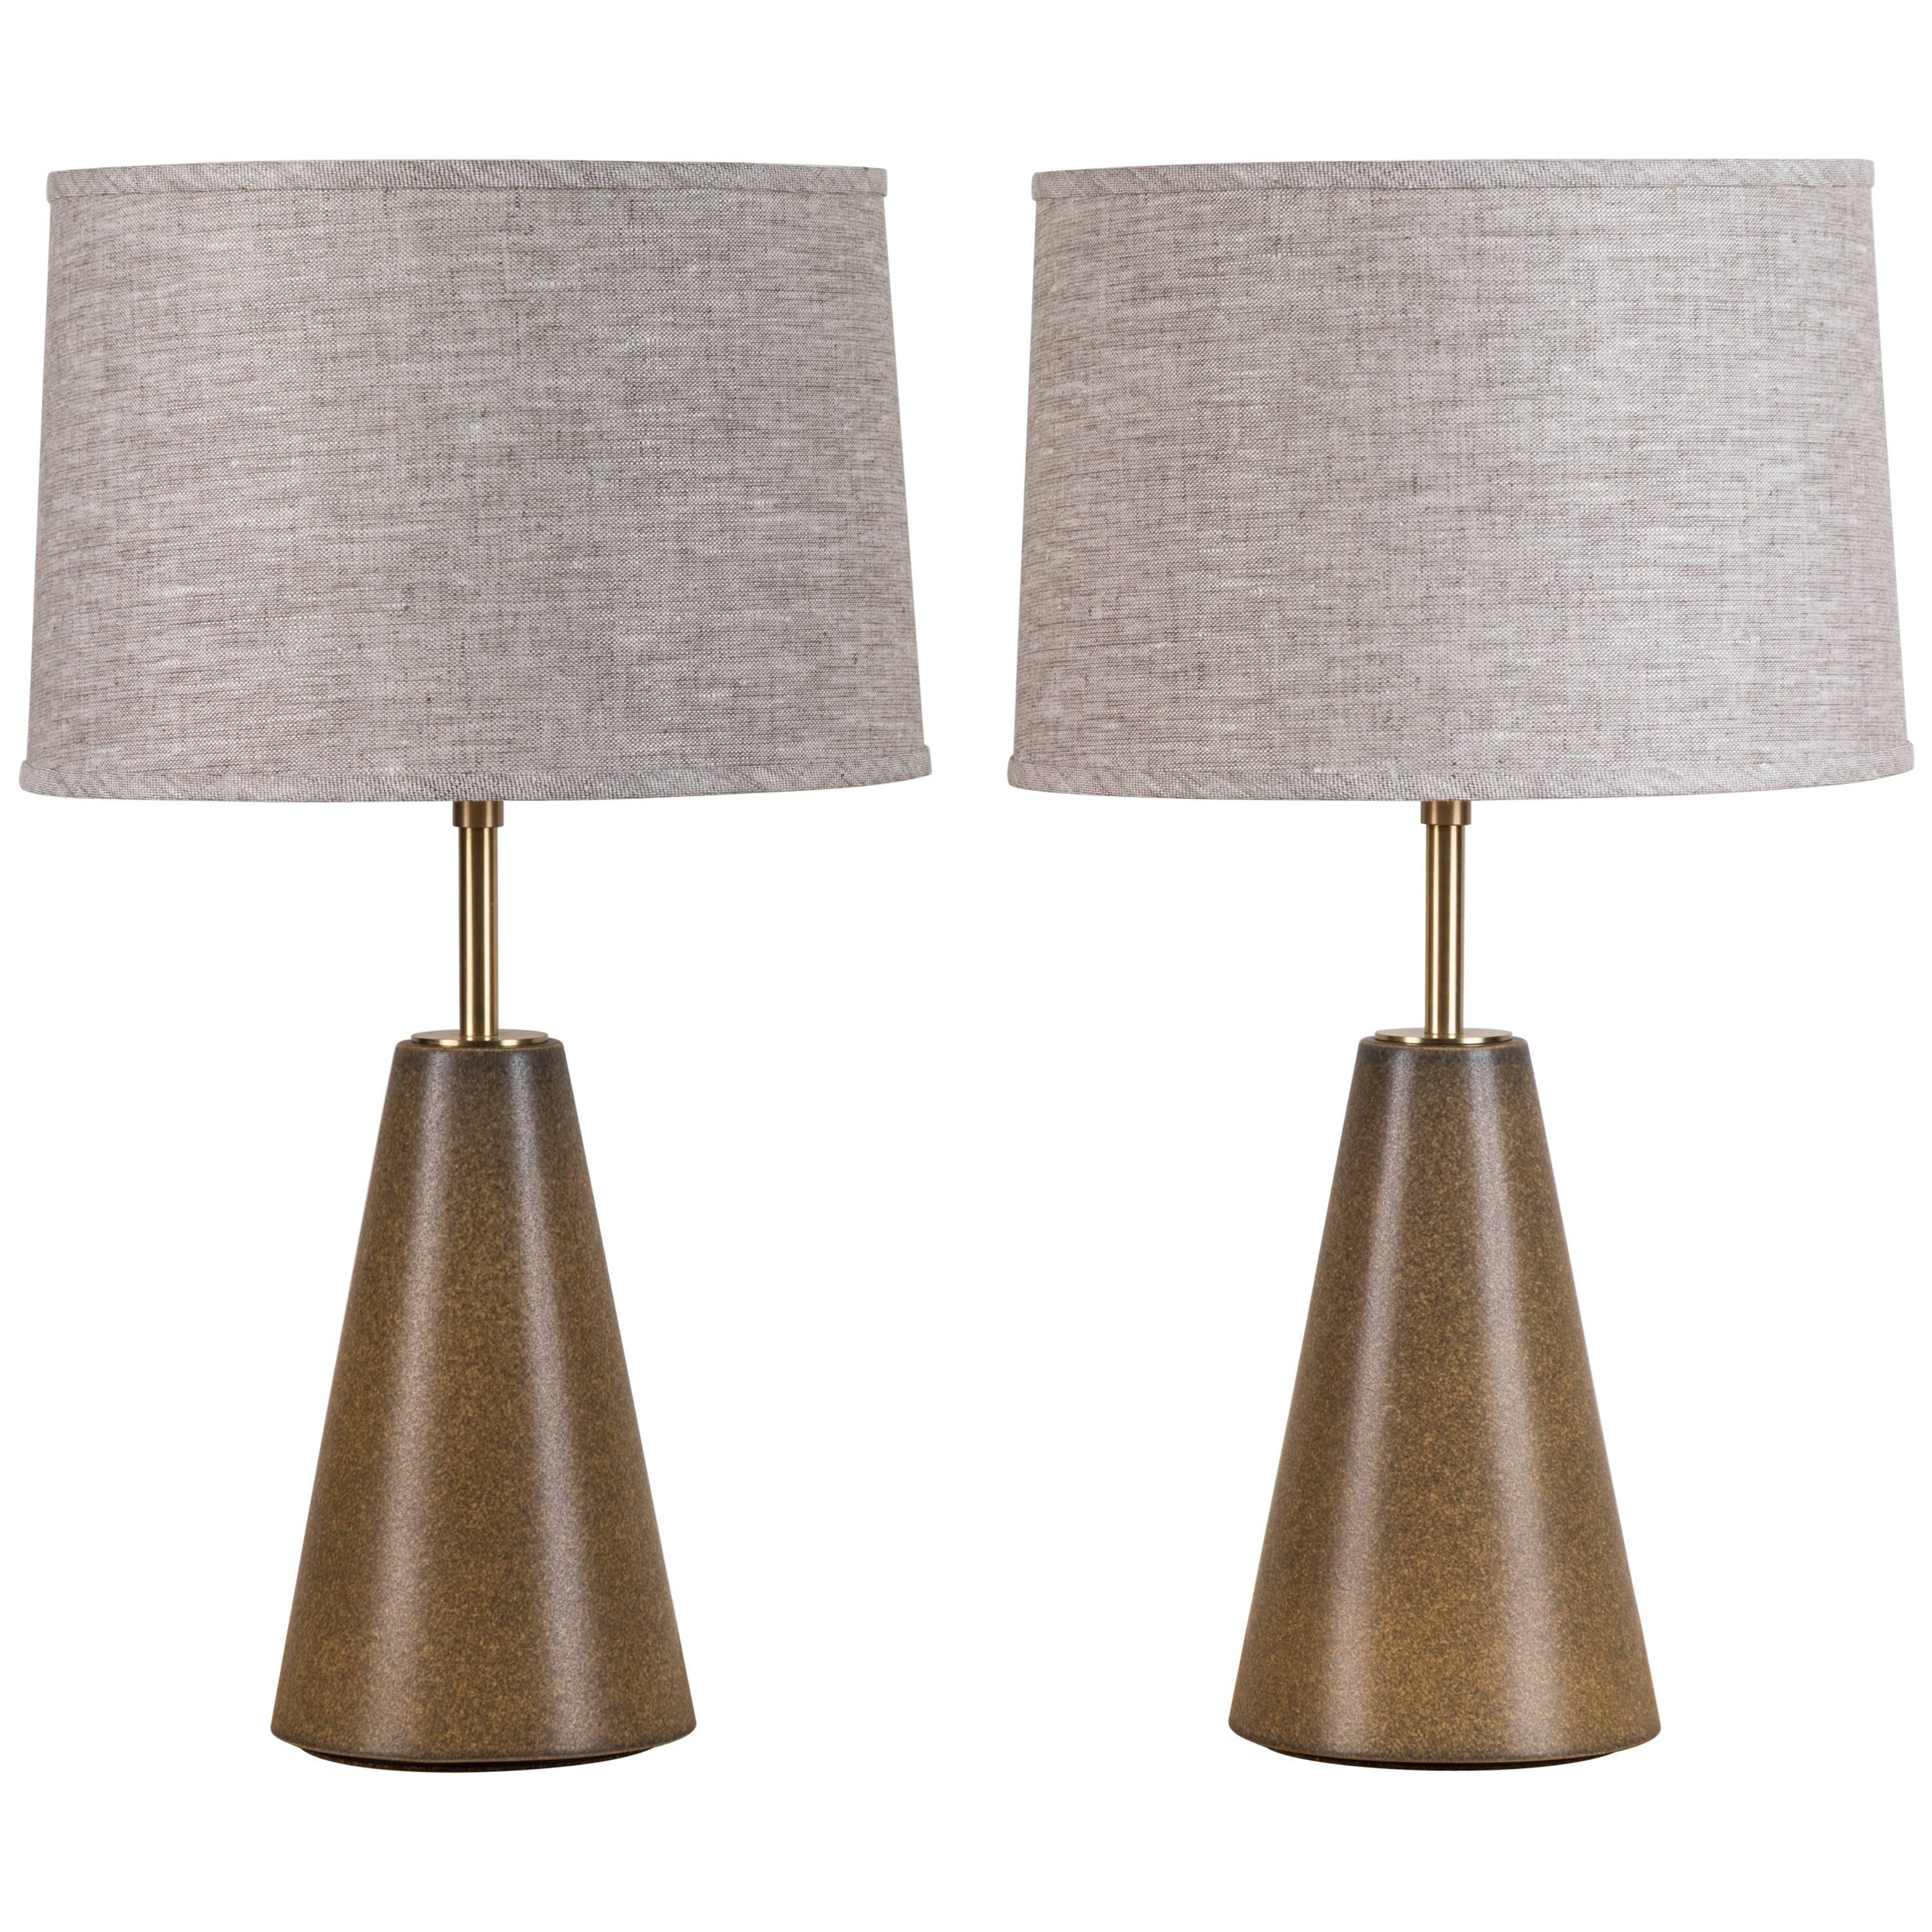 Pair of Gio Lamps by Stone and Sawyer for Lawson-Fenning